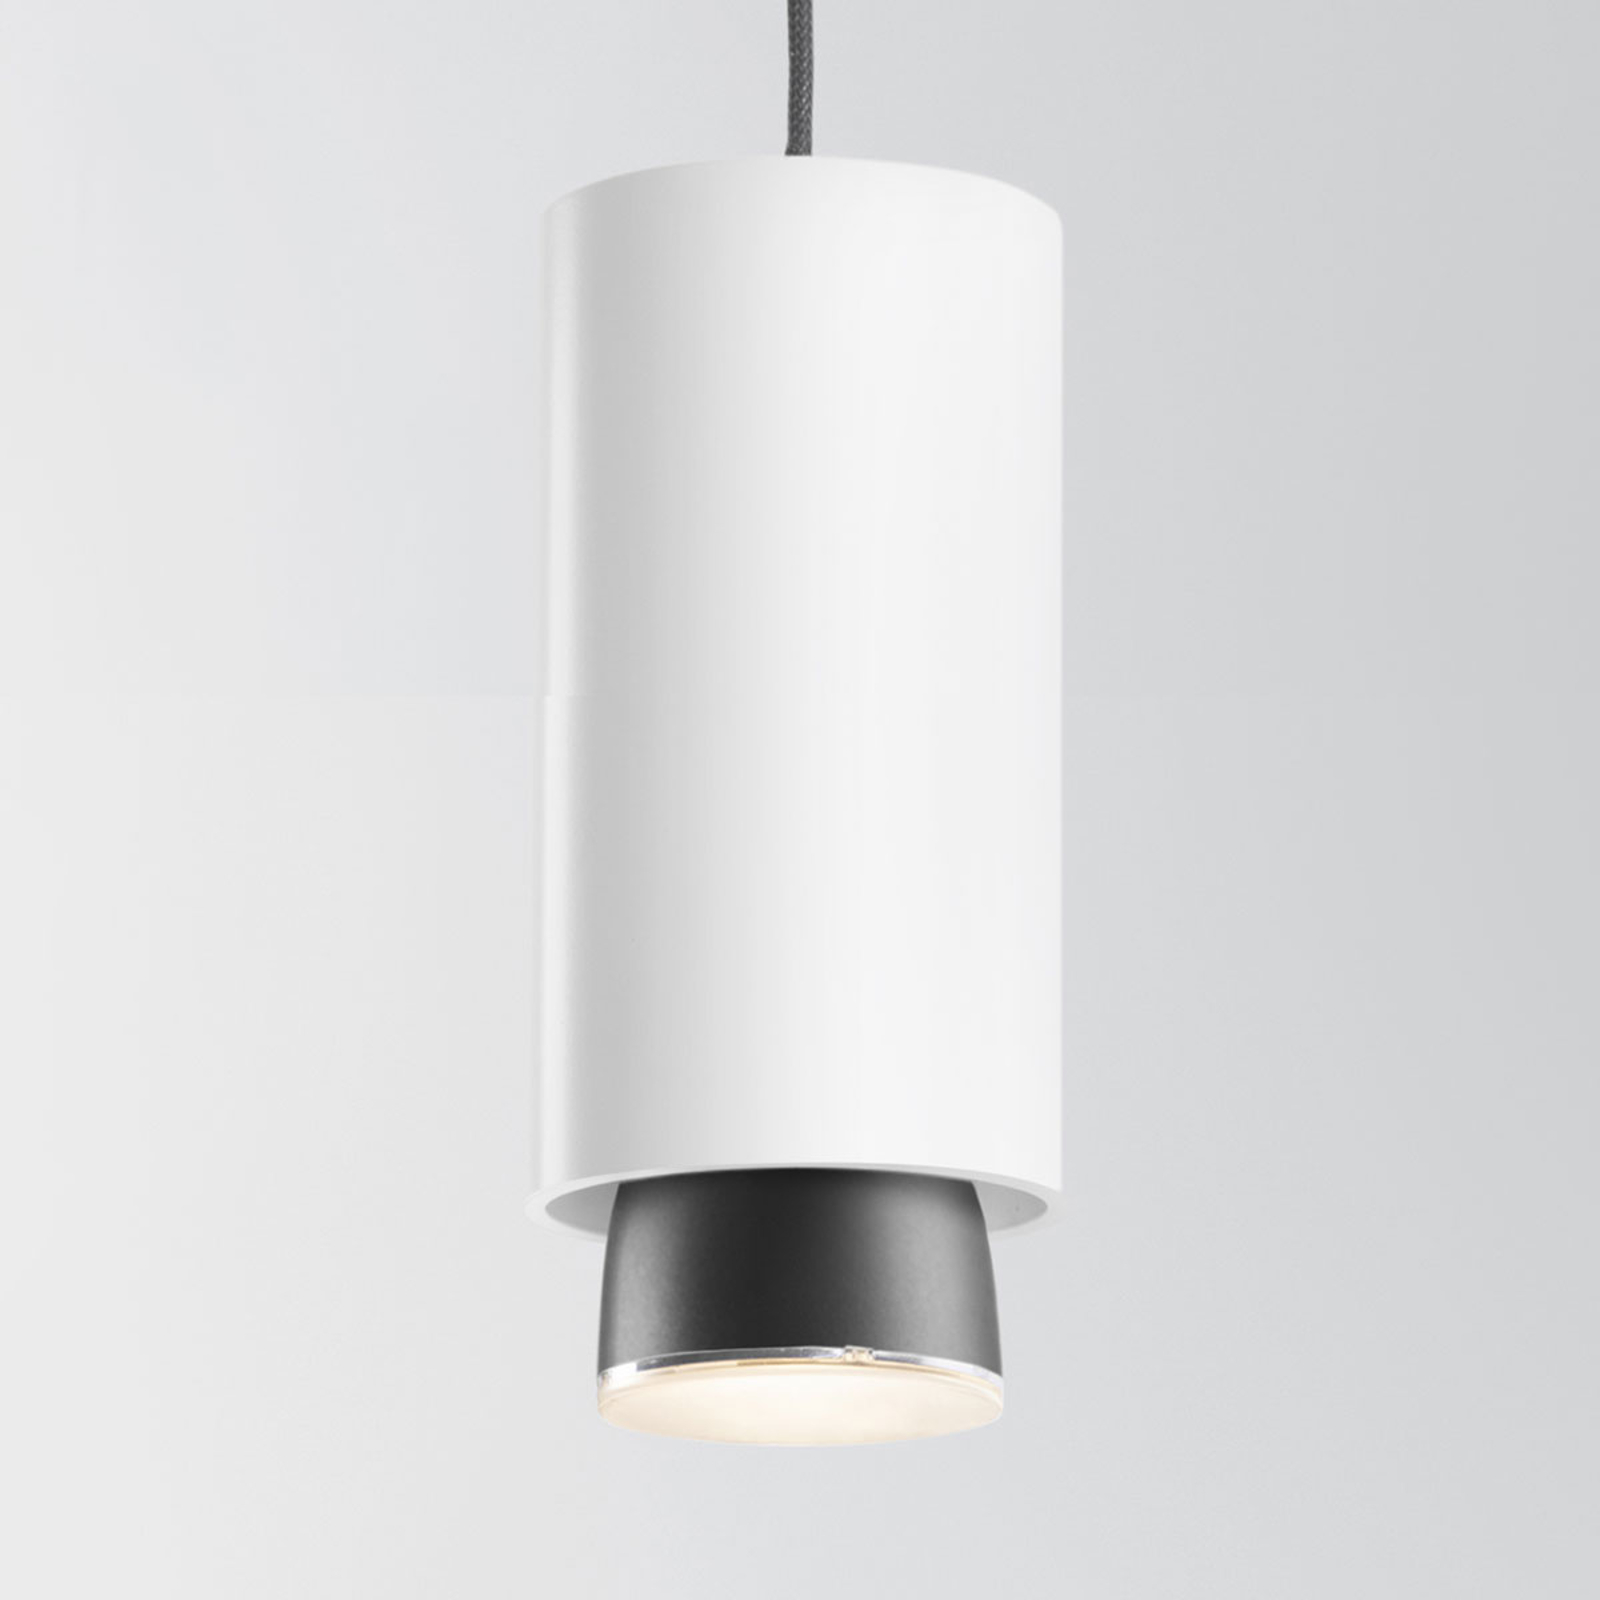 Fabbian Claque LED hanglamp 20 cm wit